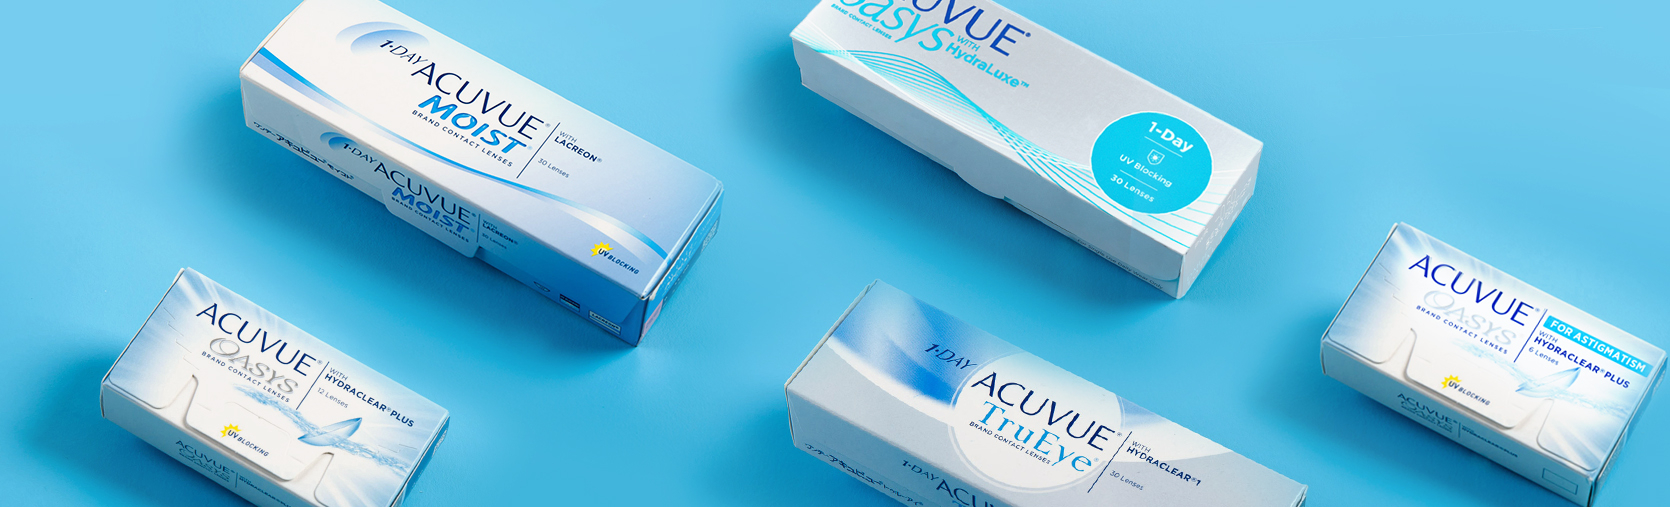 Acuvue contact lens packets